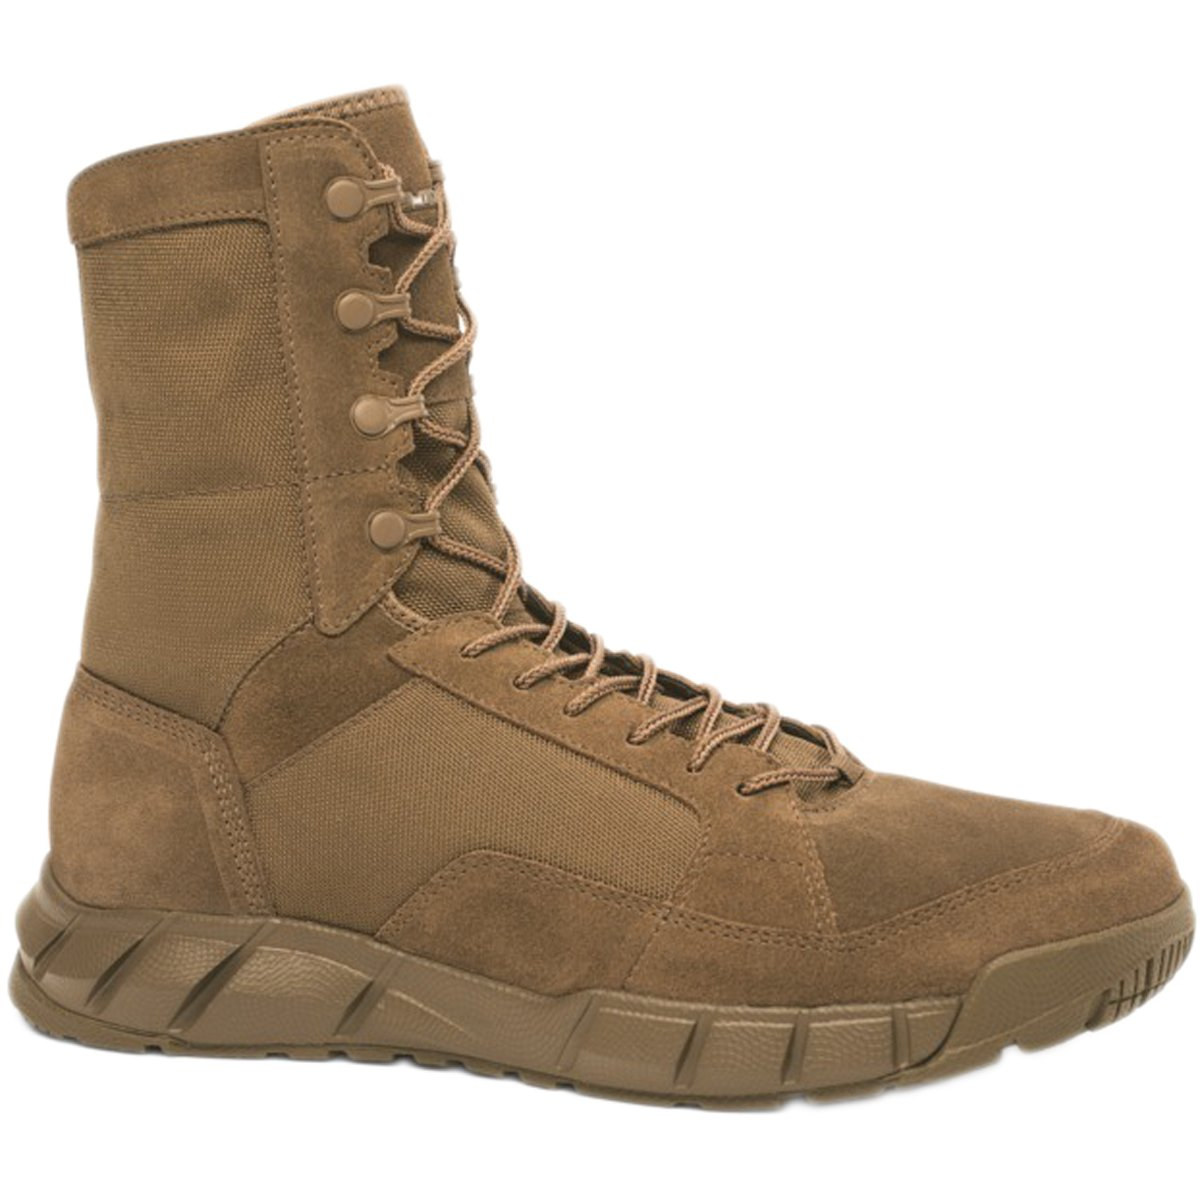 Oakley Men's Light Assault 2 Boots,10.5,Coyote by Oakley